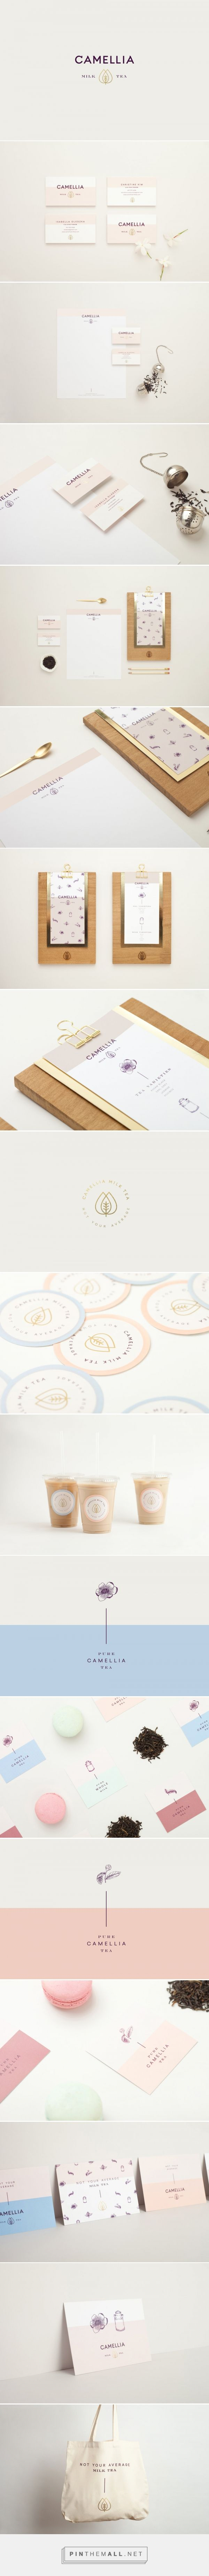 Camellia Milk and Tea Shop Branding and Menu Design by Menta | Fivestar Branding Agency – Design and Branding Agency & Curated Inspiration Gallery